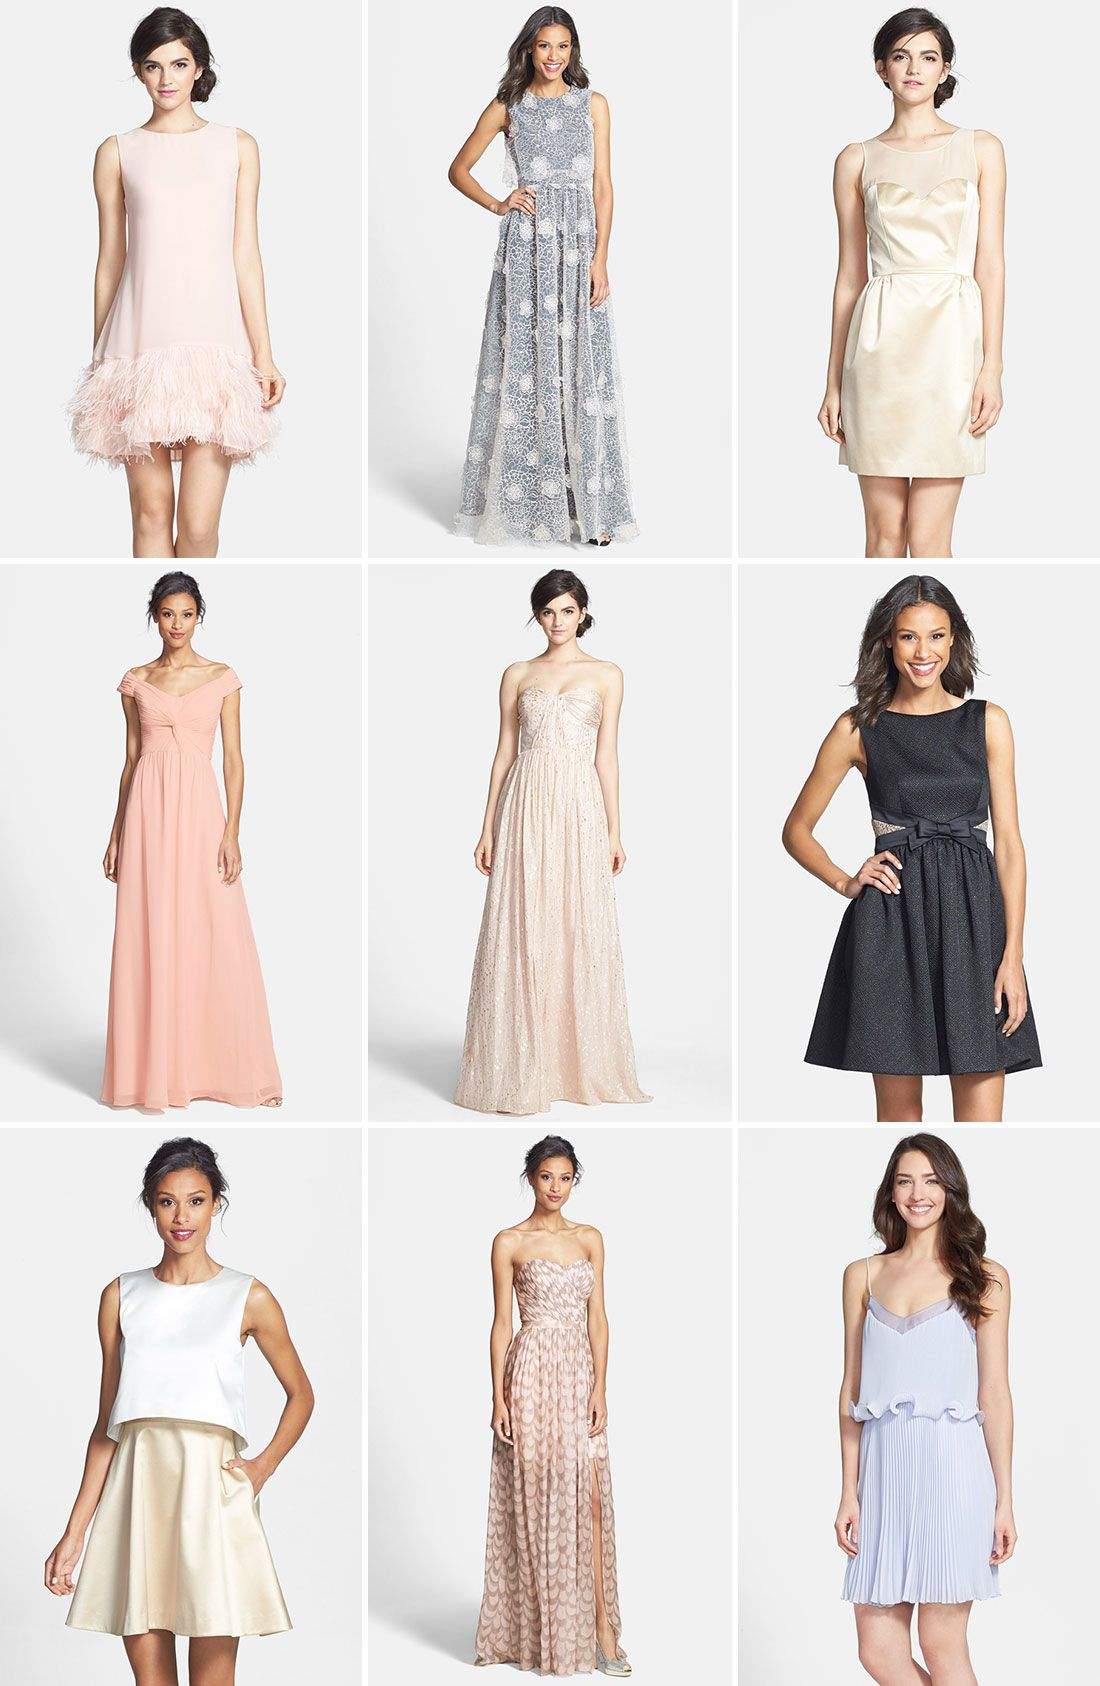 Swooning over these dresses.